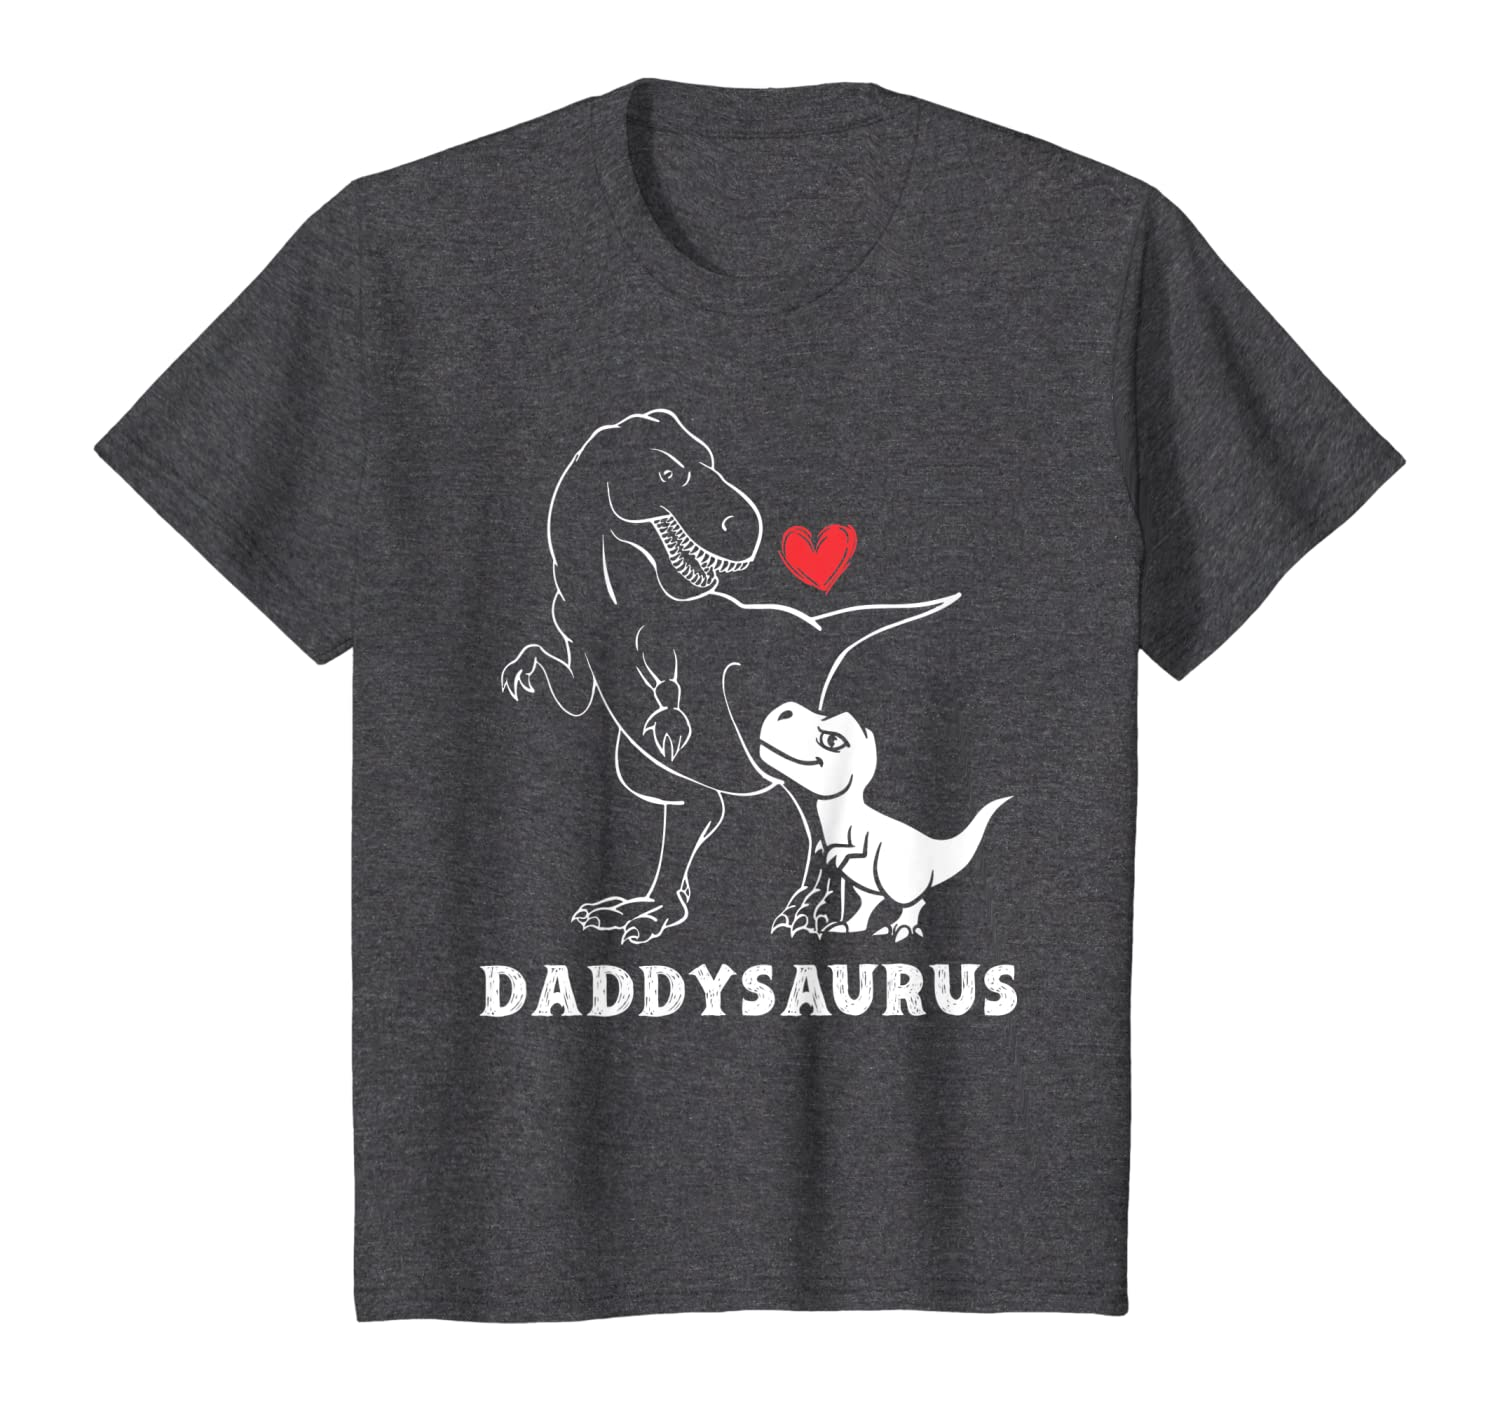 Mens Daddysaurus Dinosaur T-shirt Gifts For Dad Fathers Day T-shirt - Dad Shirts Up To 5xl